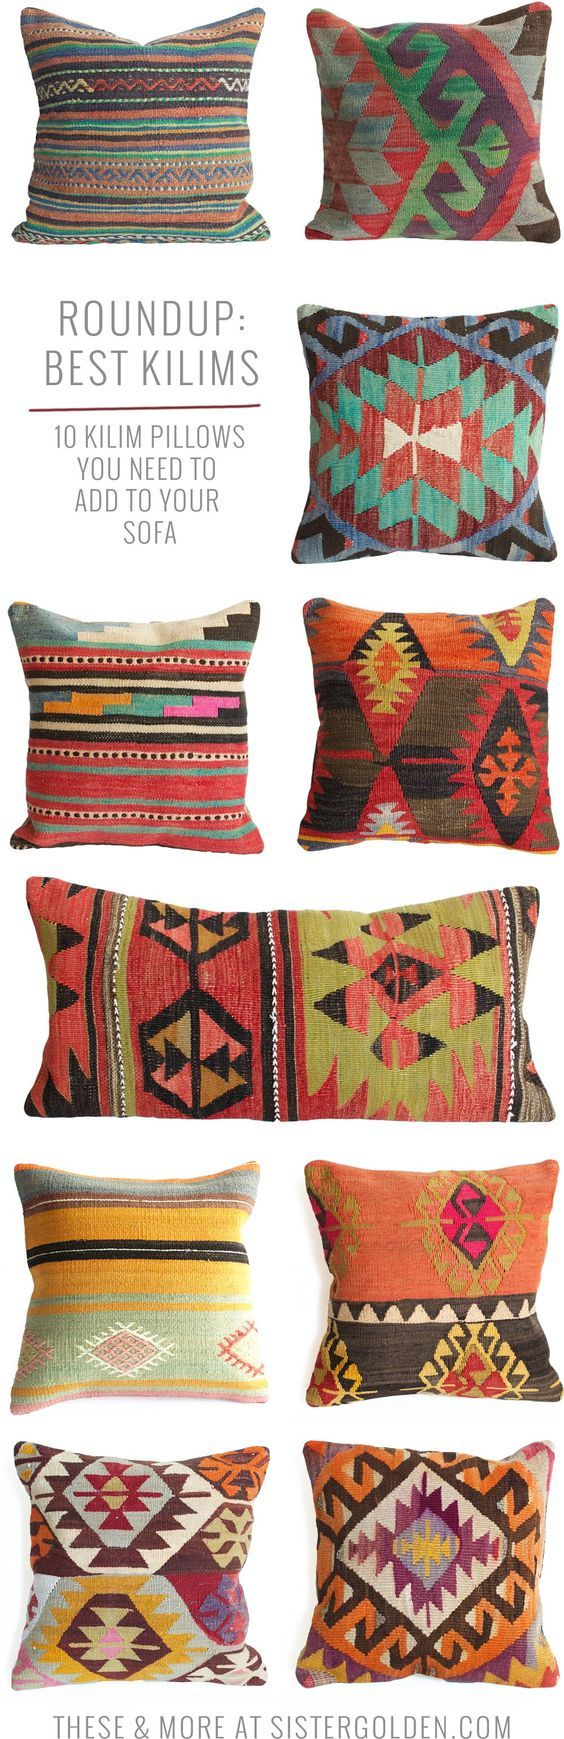 kilim pillows that will add instant boho style to any drab couch interior design pinterest. Black Bedroom Furniture Sets. Home Design Ideas